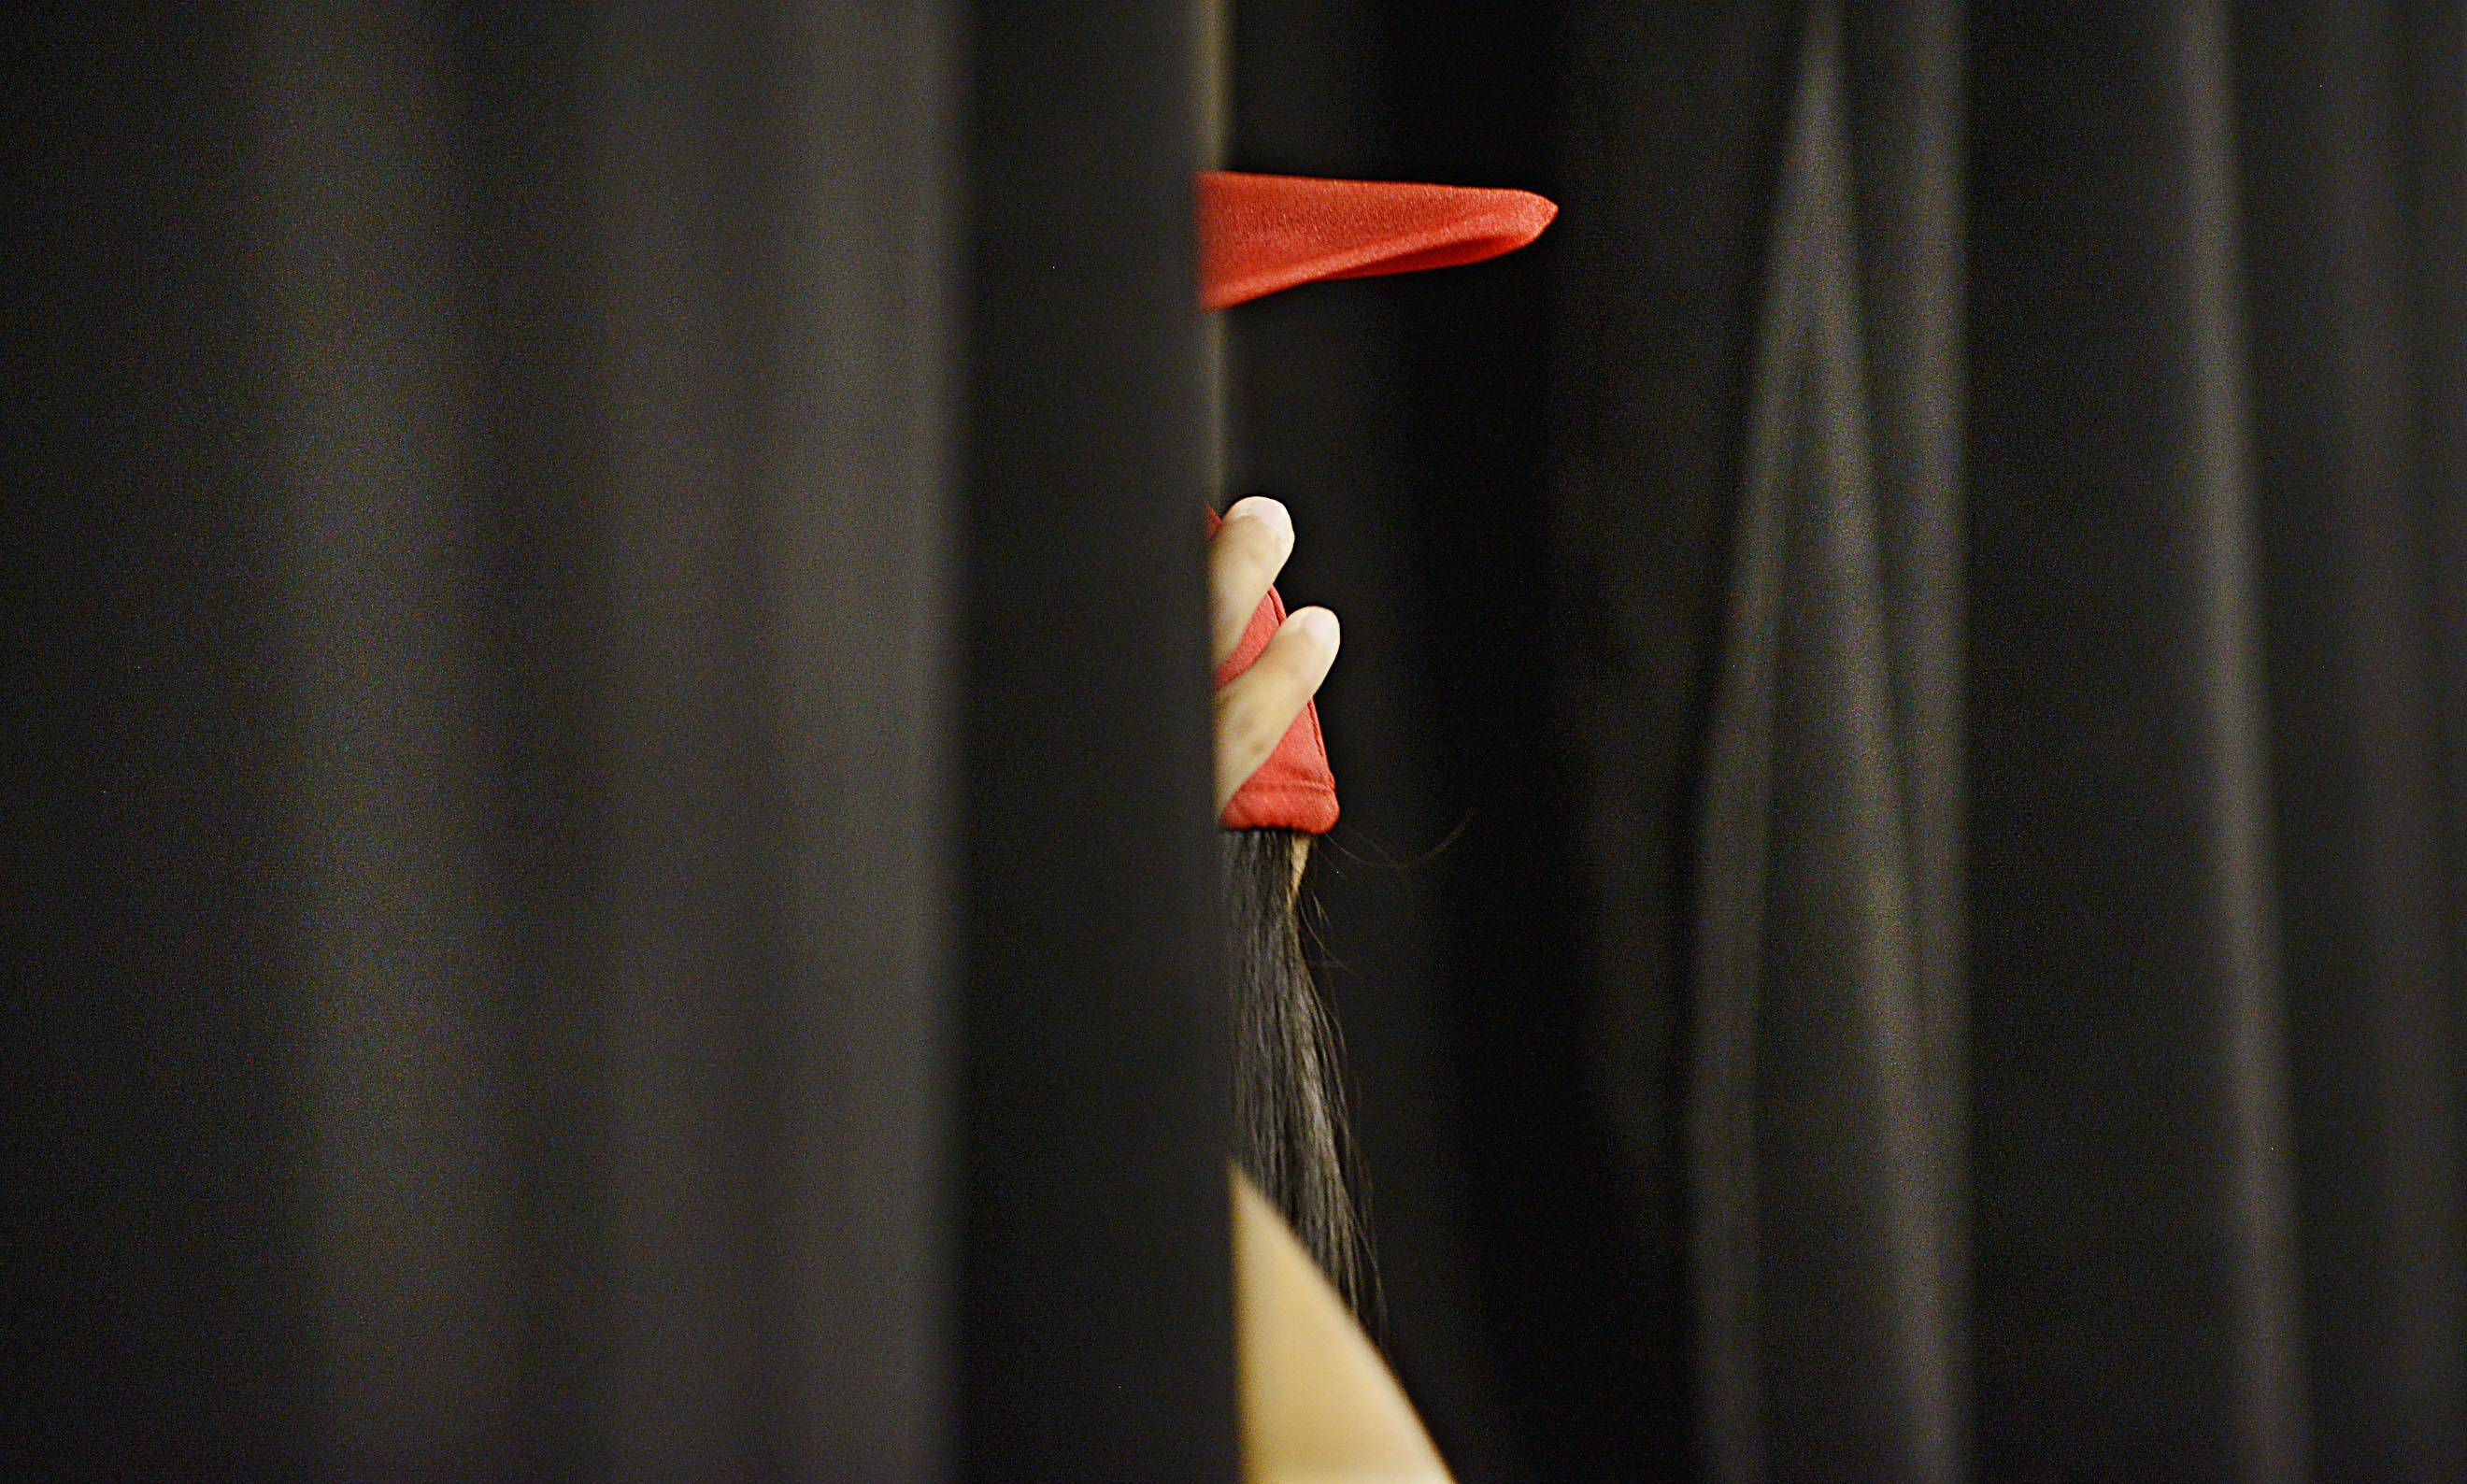 Graduate Brenda Abrego makes a final adjustment to her mortarboard as she waits with classmates behind a black curtain Sunday before the Mundelein High school Commencement Exercises at Sears Center in Hoffman Estates.